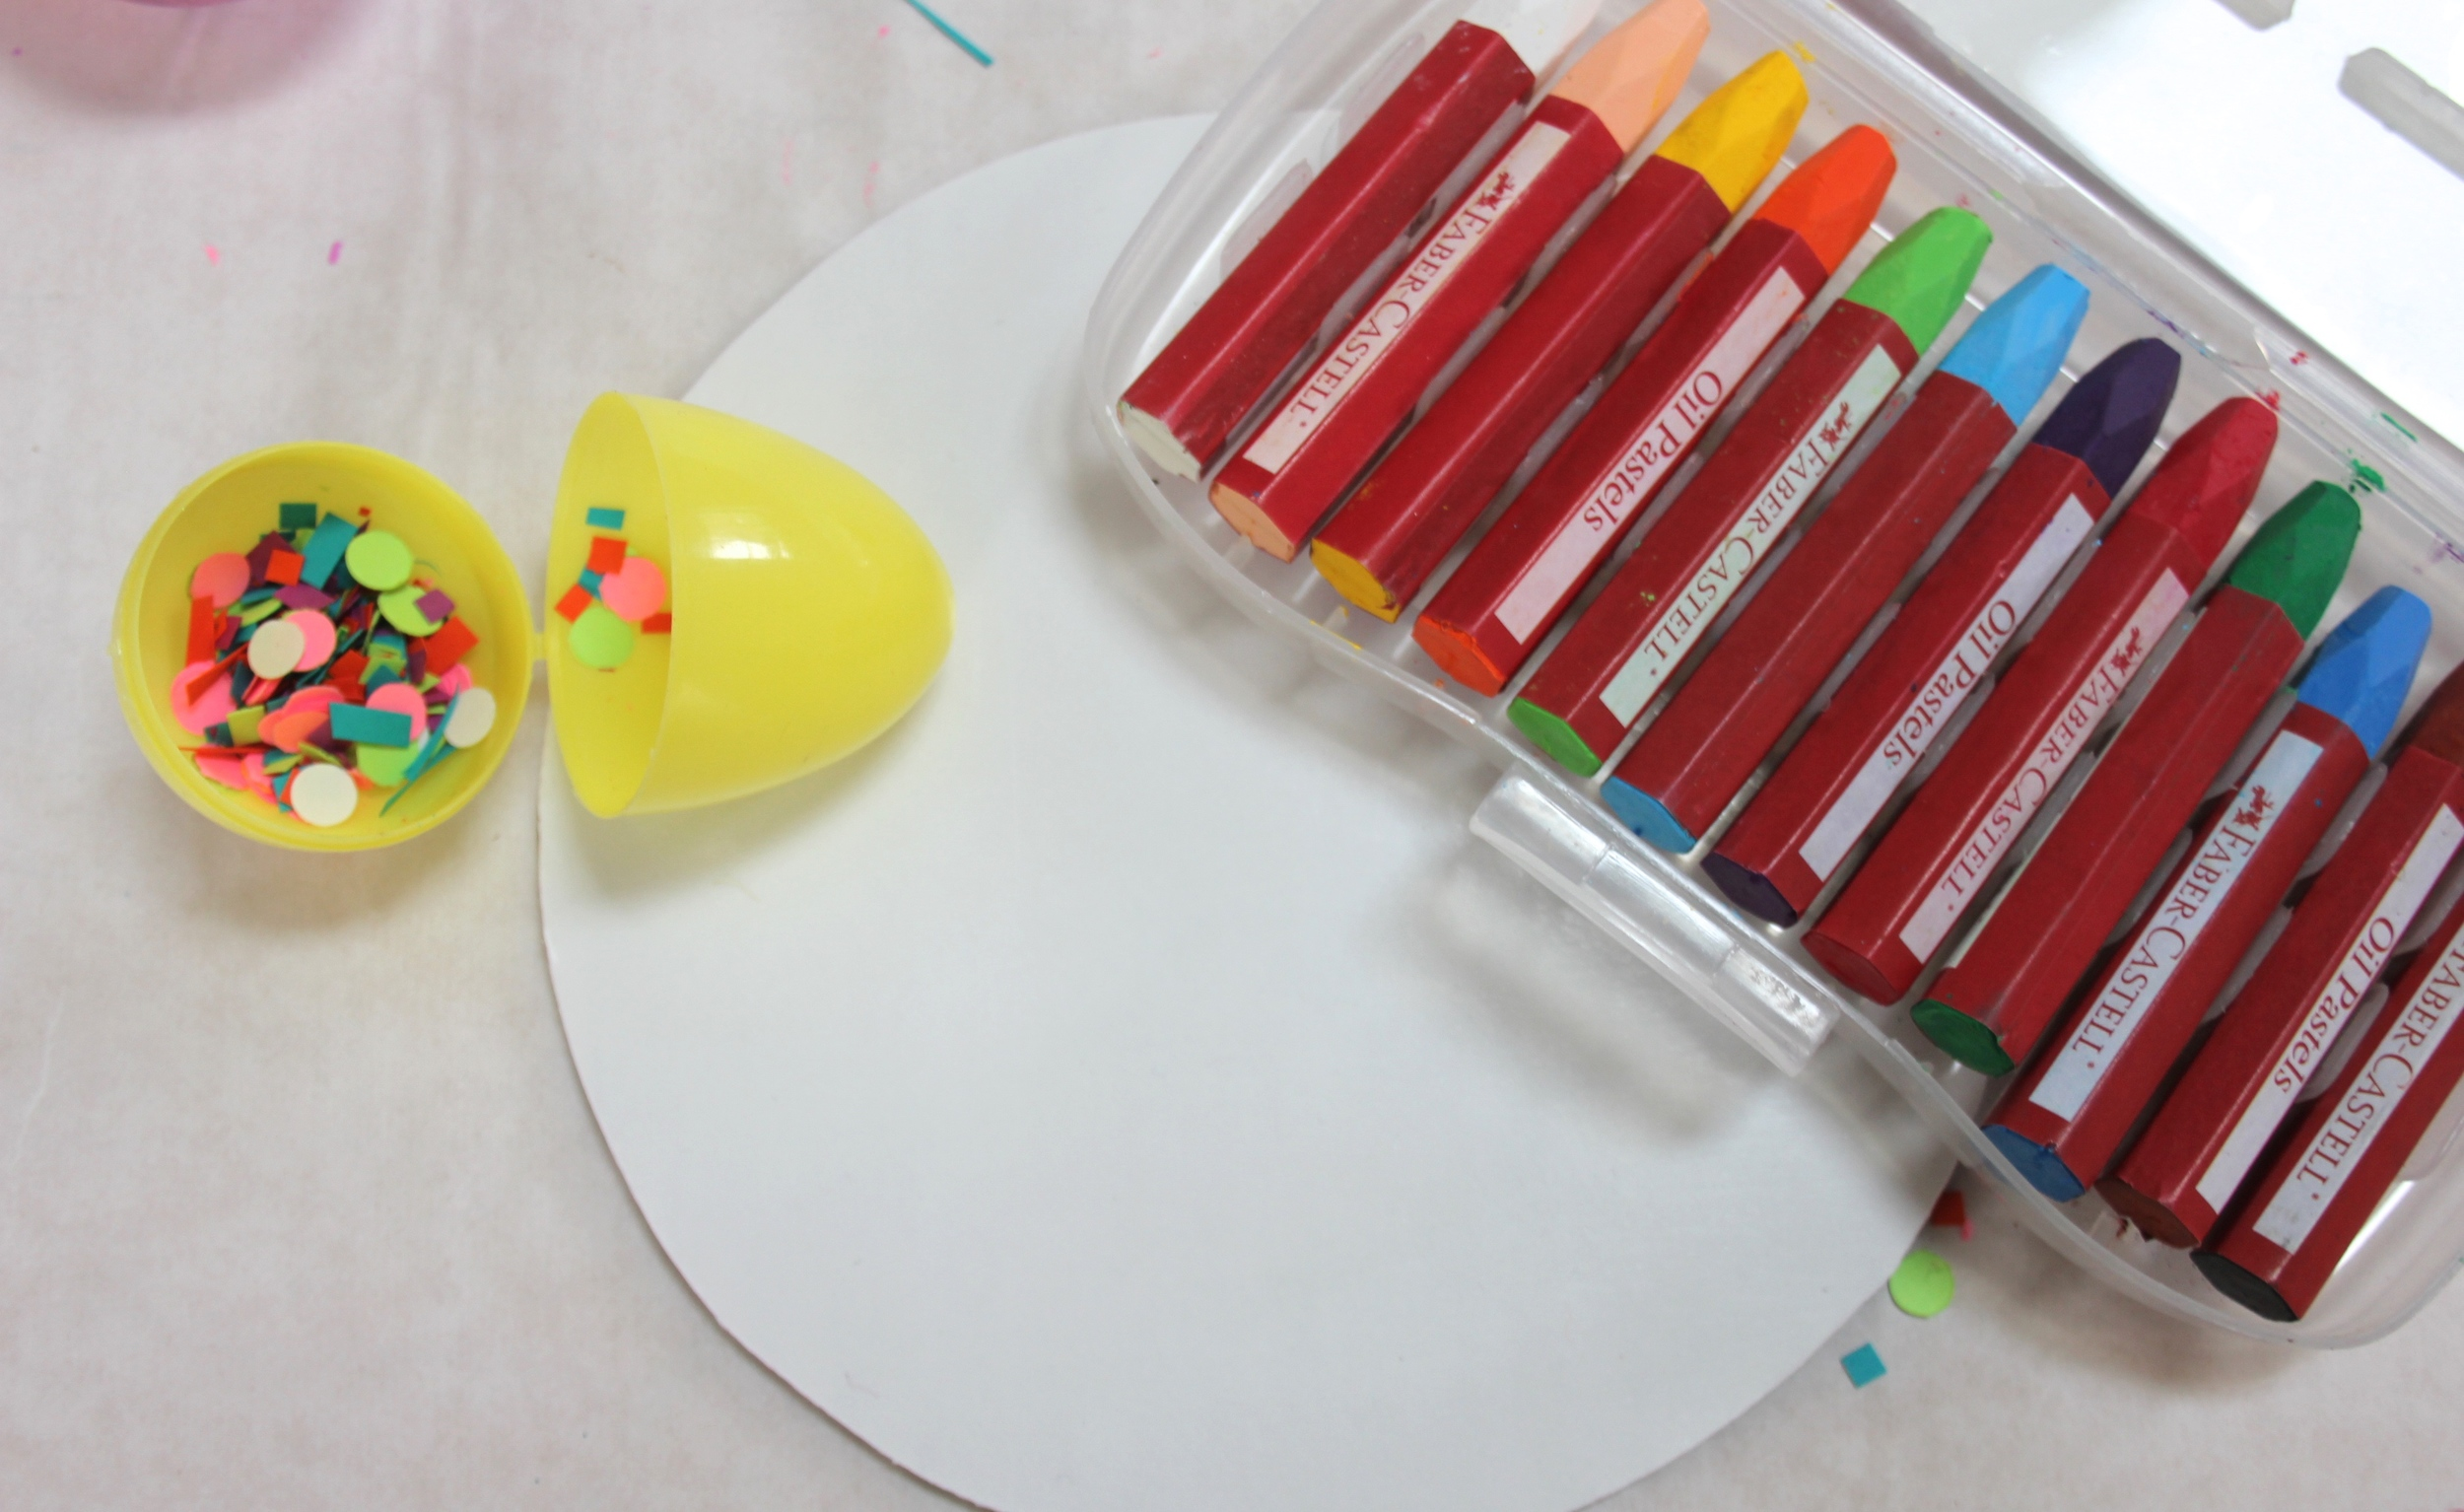 Cut a circle piece of paper. Draw to your heart's content using your favorite drawing tools.